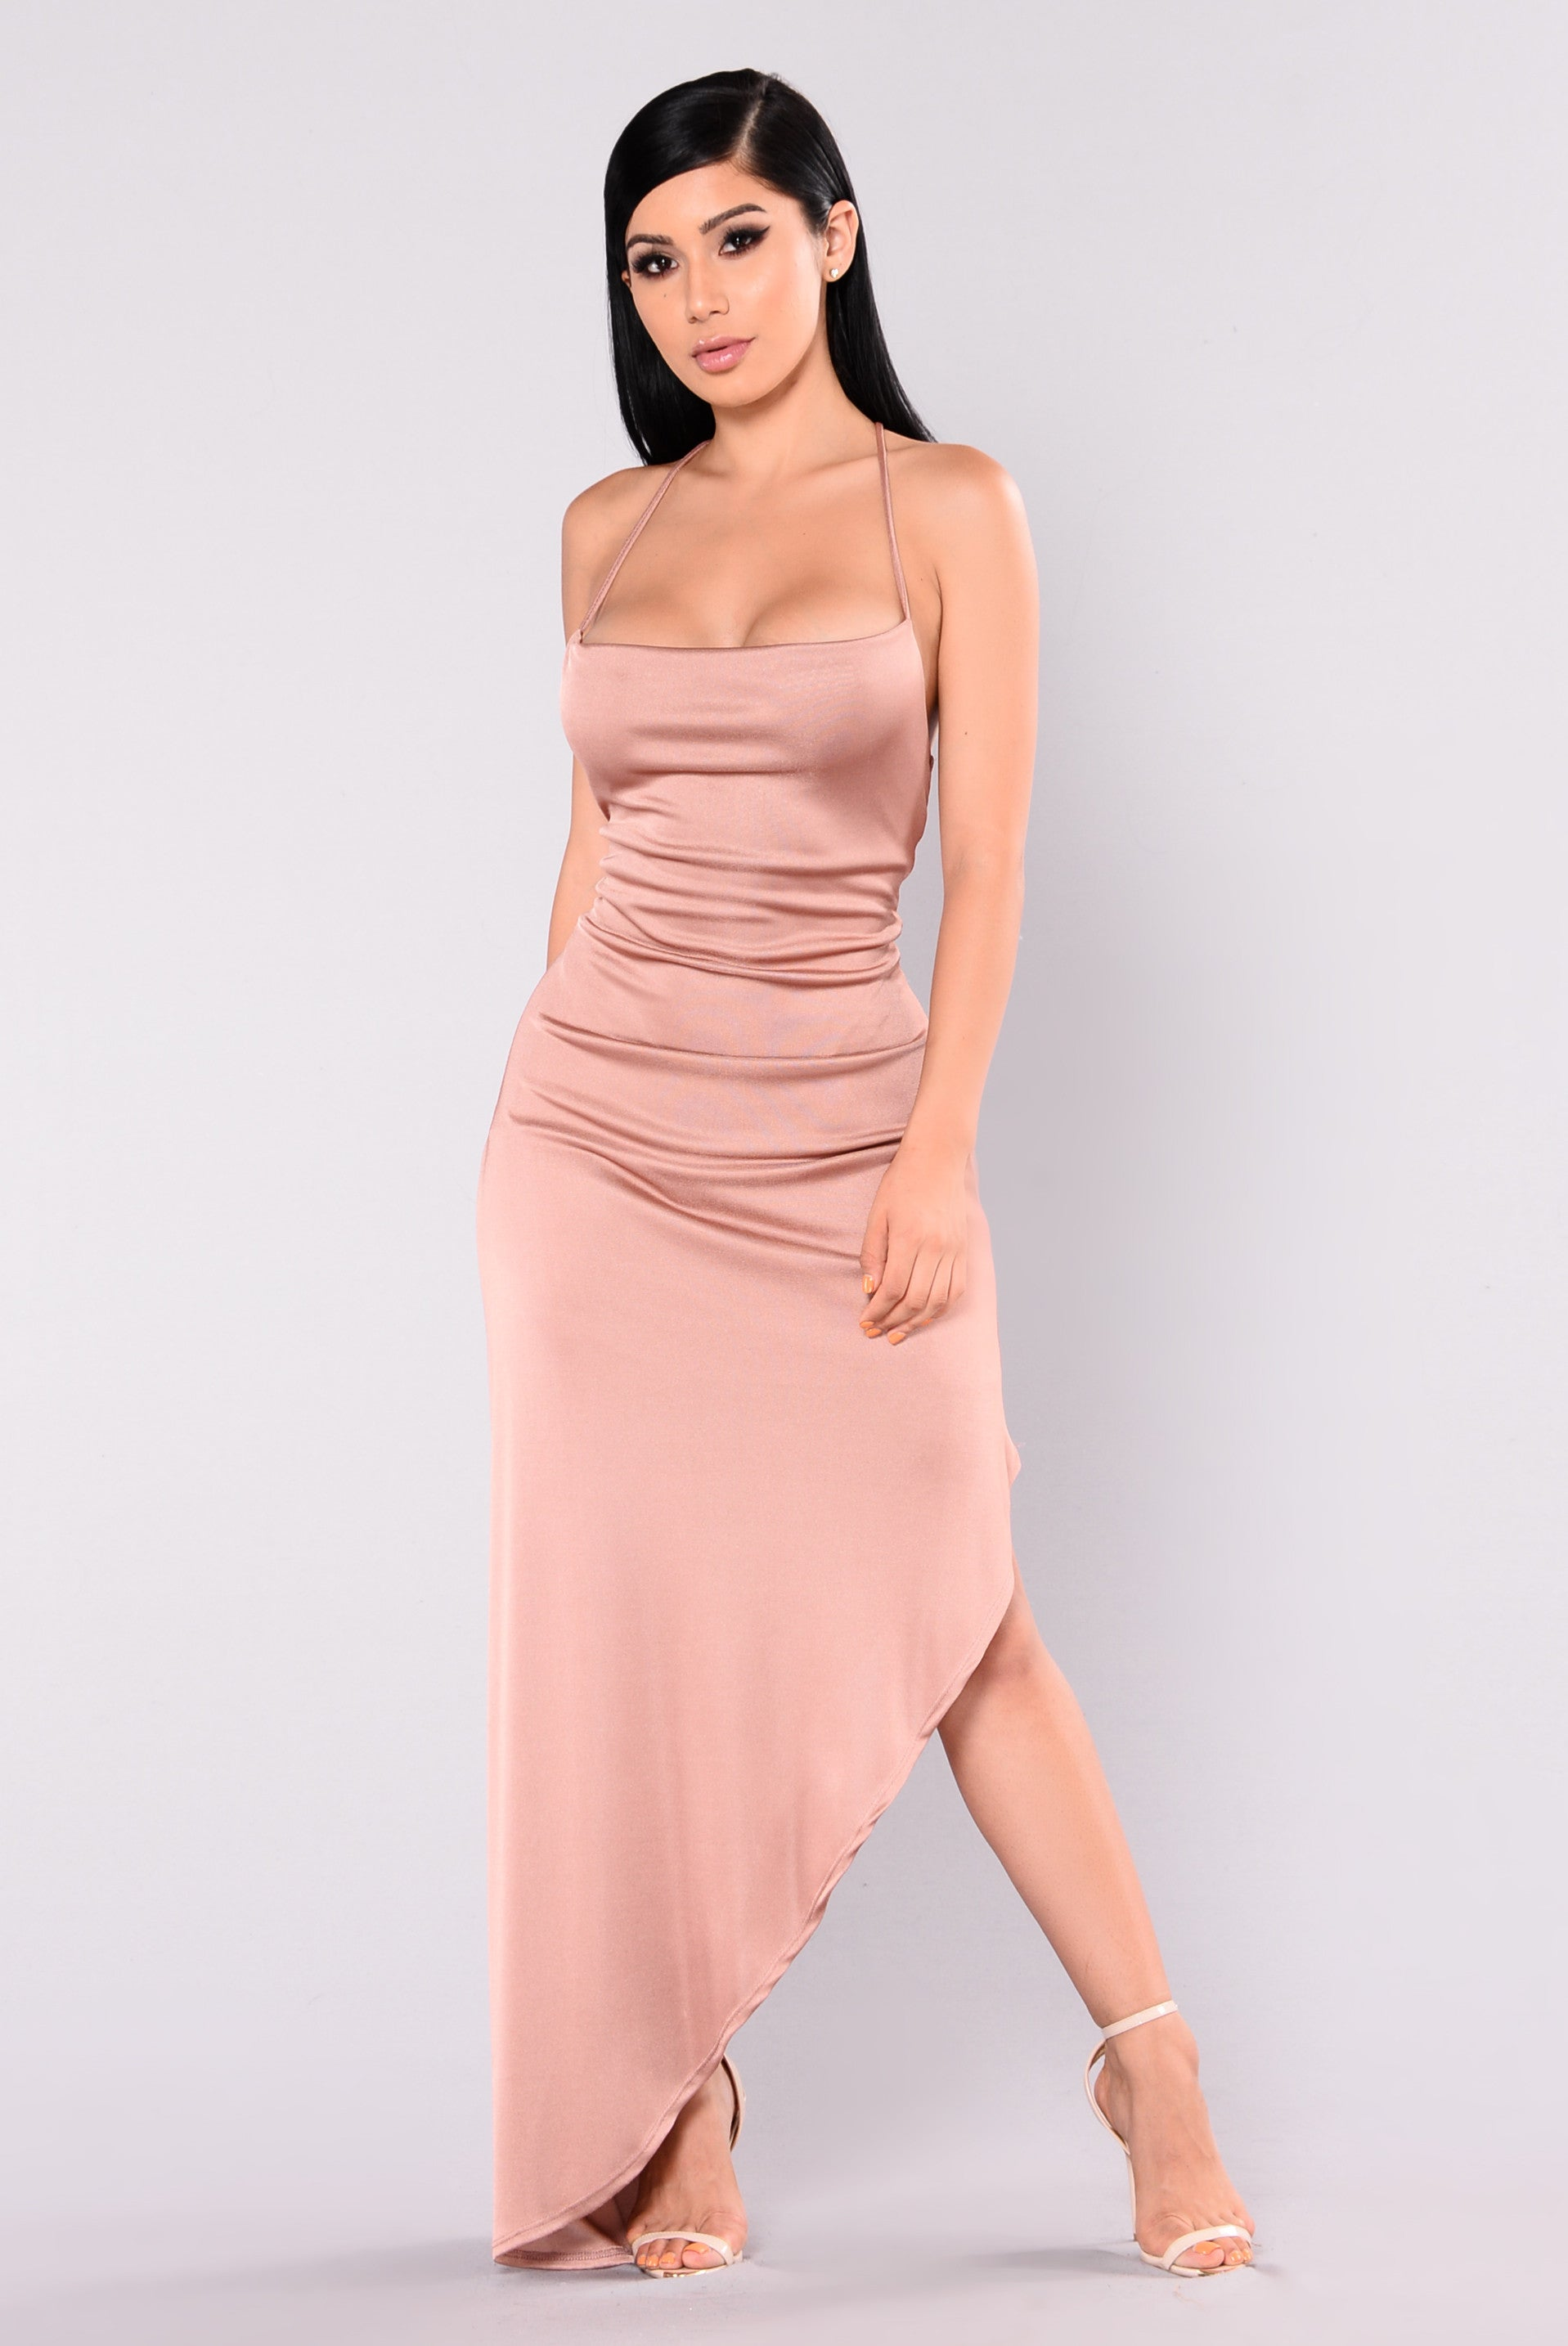 Pink dress with rose gold